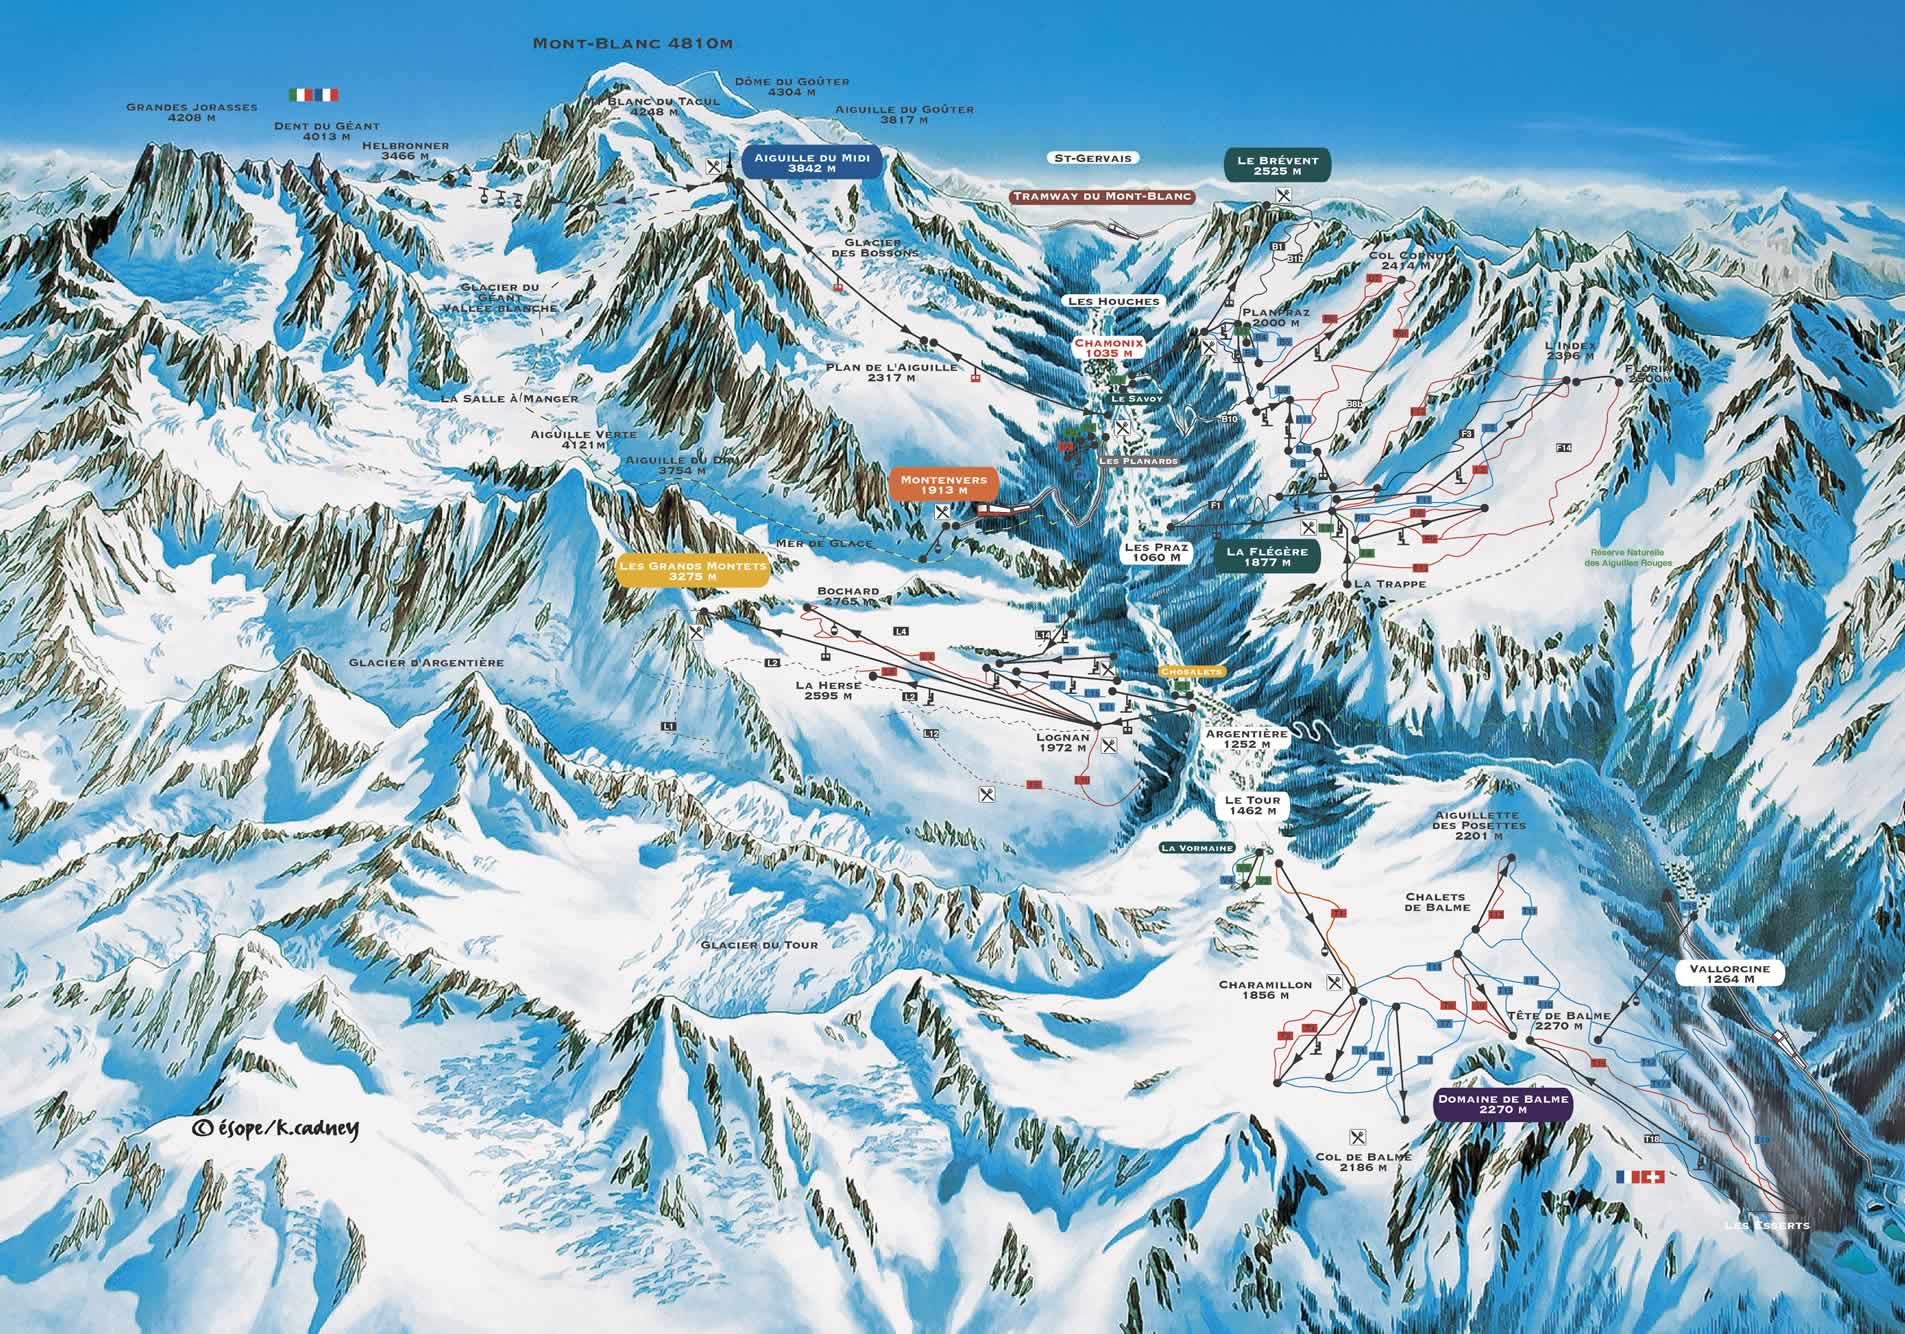 Chamonix Piste Ski Area Trail Map MontBlanc Chamonix France mappery